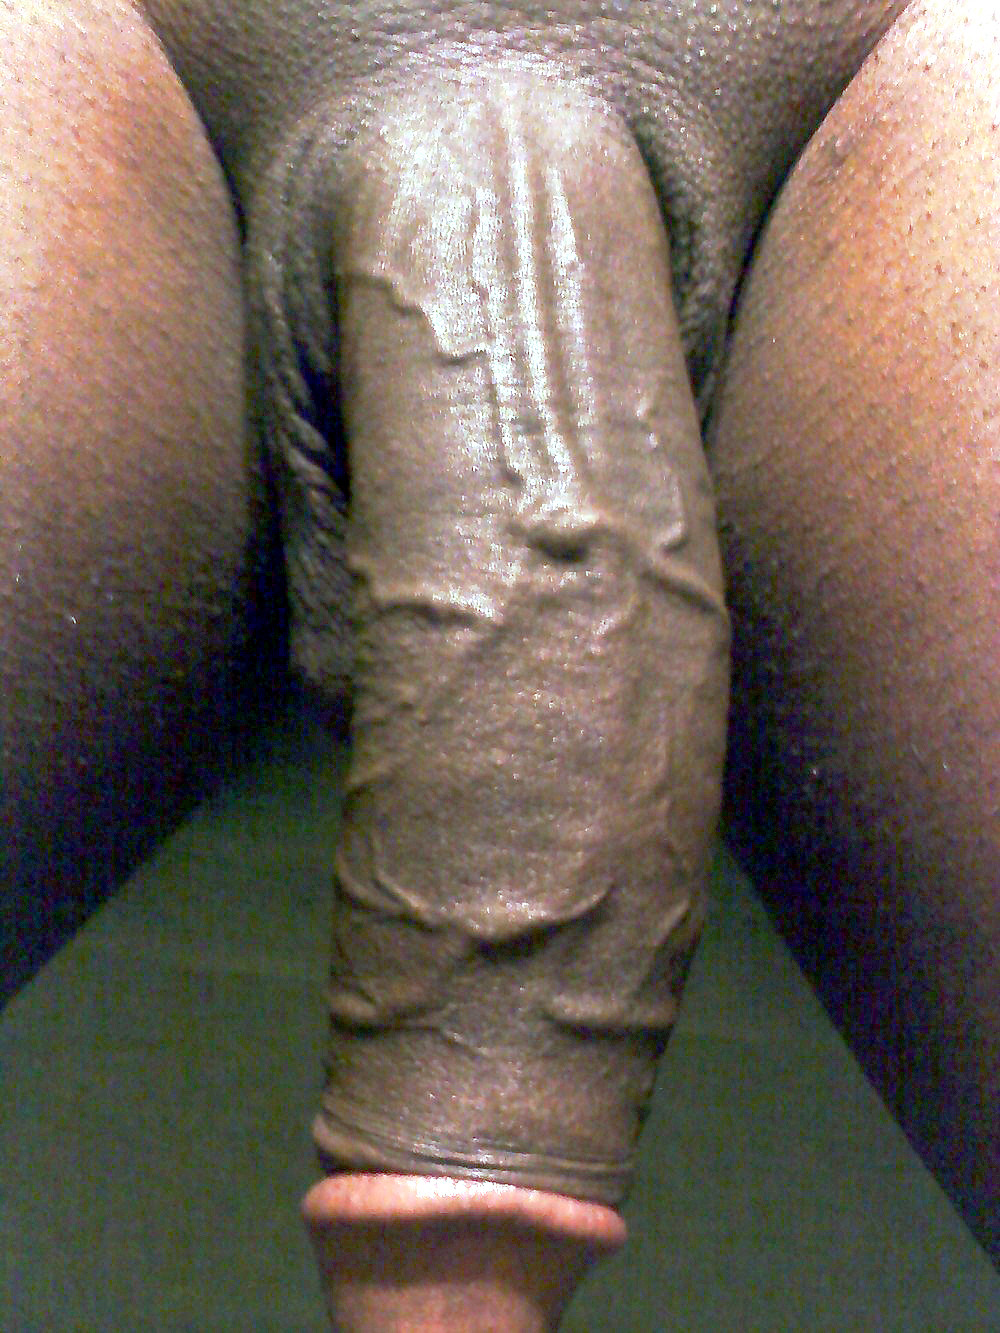 2 cocks complete for doll during frottage handjob 3